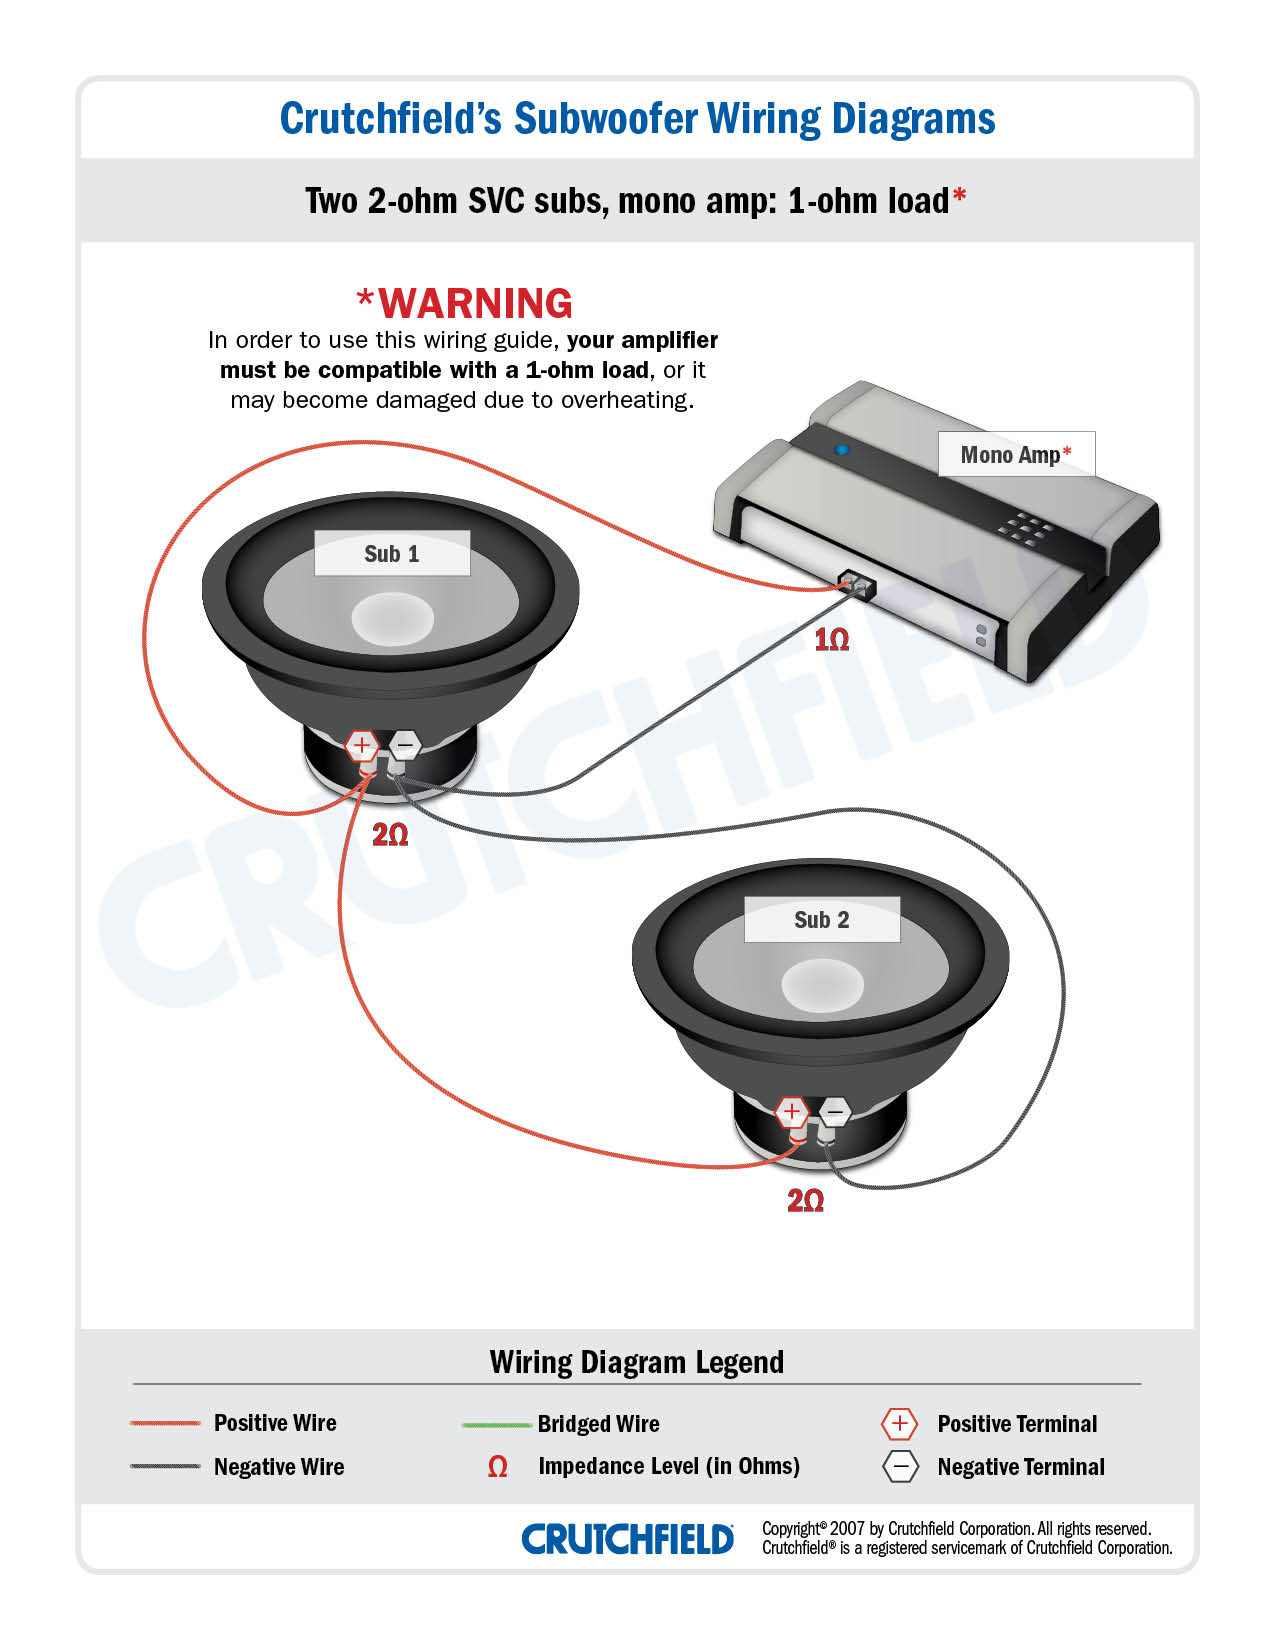 1 ohm wiring diagram yuk music city uk \u2022subwoofer wiring diagrams how to wire your subs rh crutchfield com 1 ohm sub wiring diagram